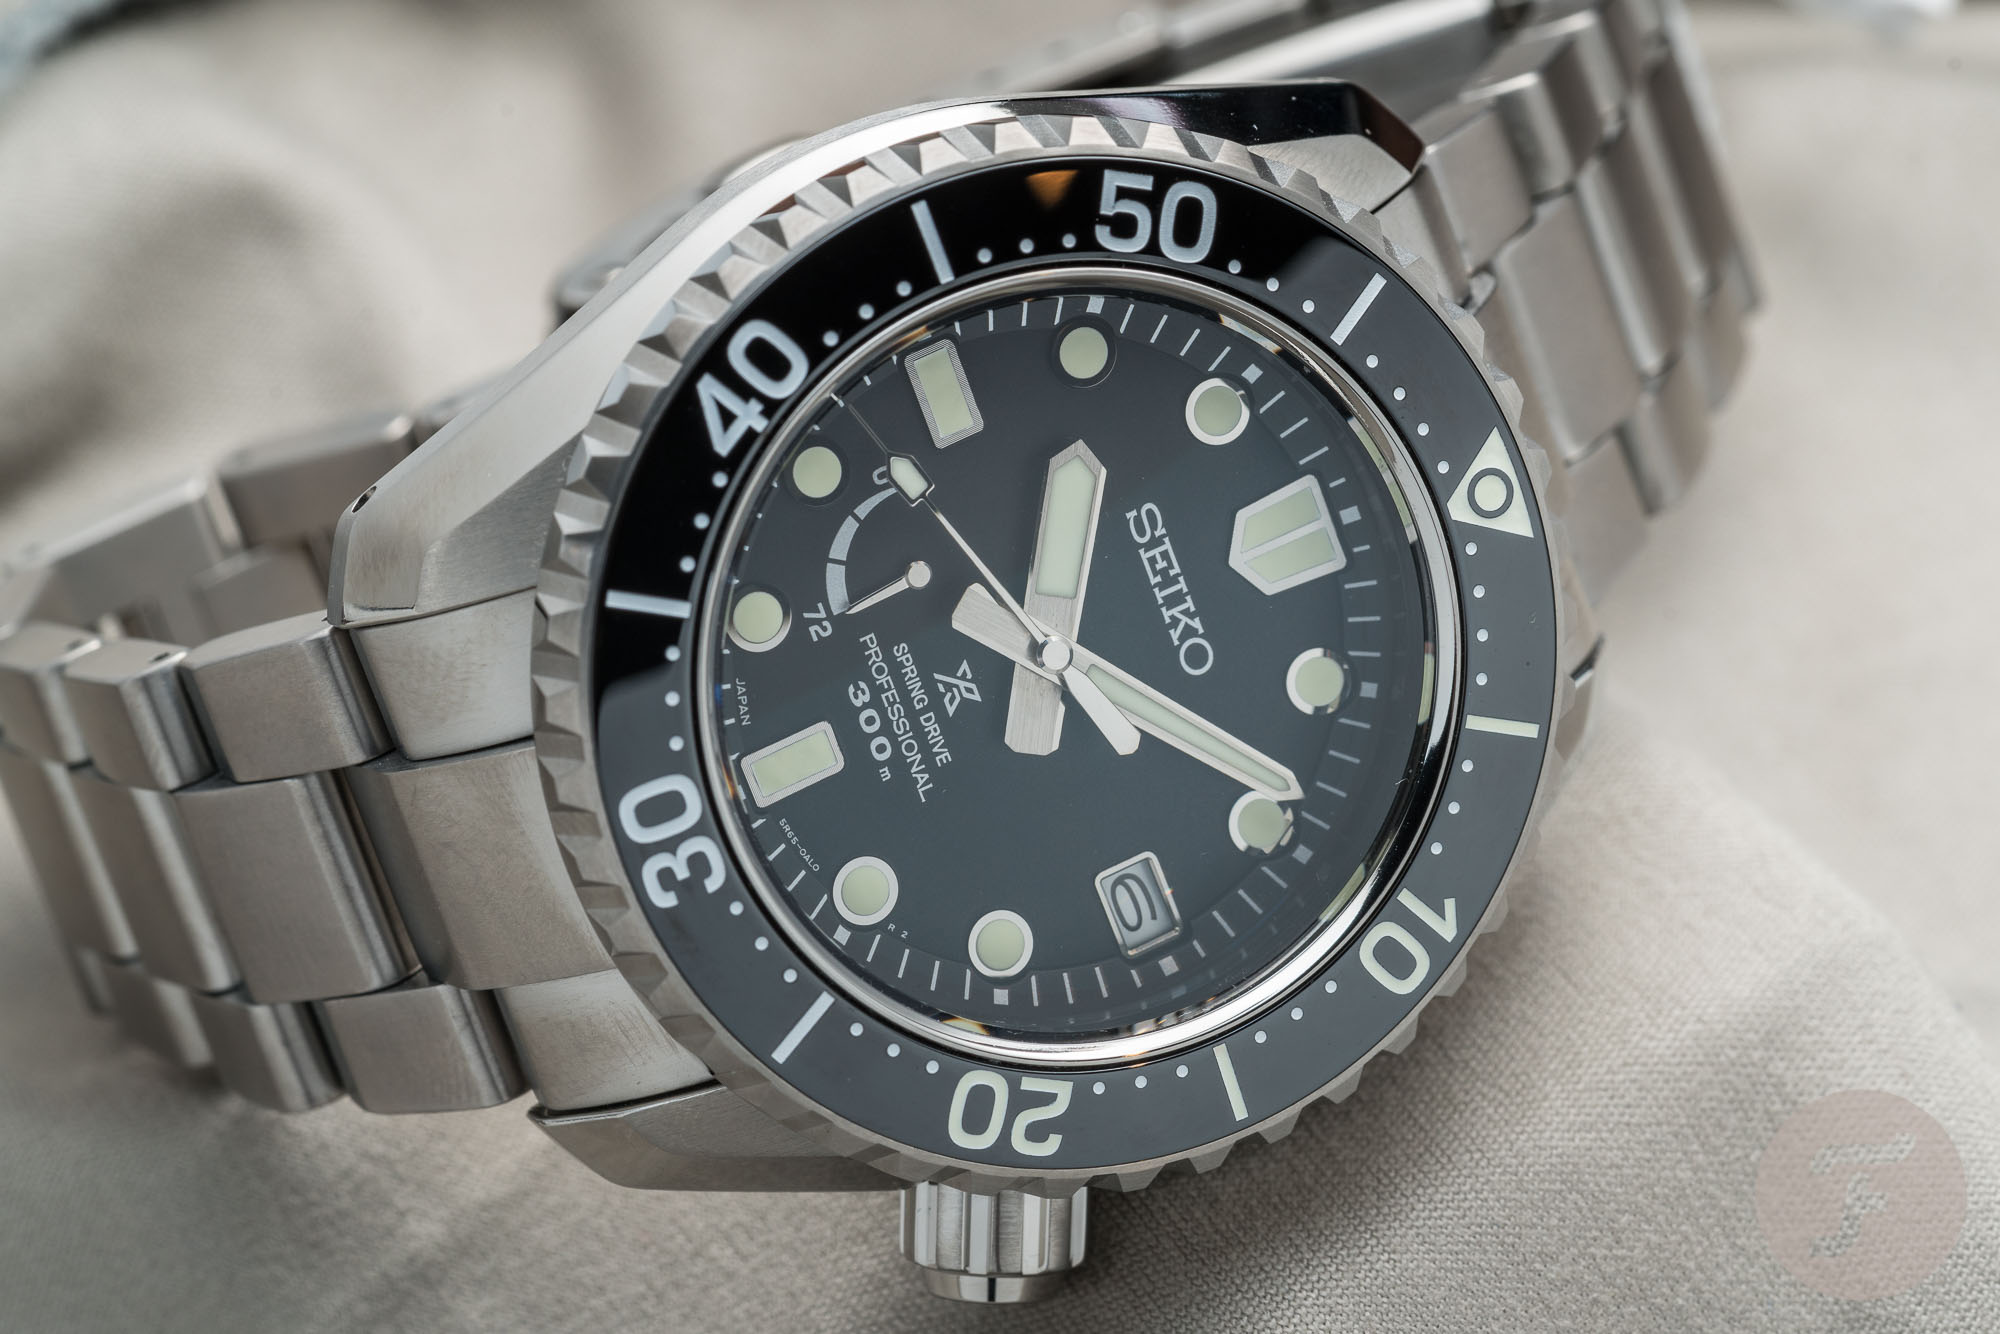 https://www.fratellowatches.com/wp-content/uploads/2019/04/Seiko-Prospex-LX-SNR029J1.004.jpg